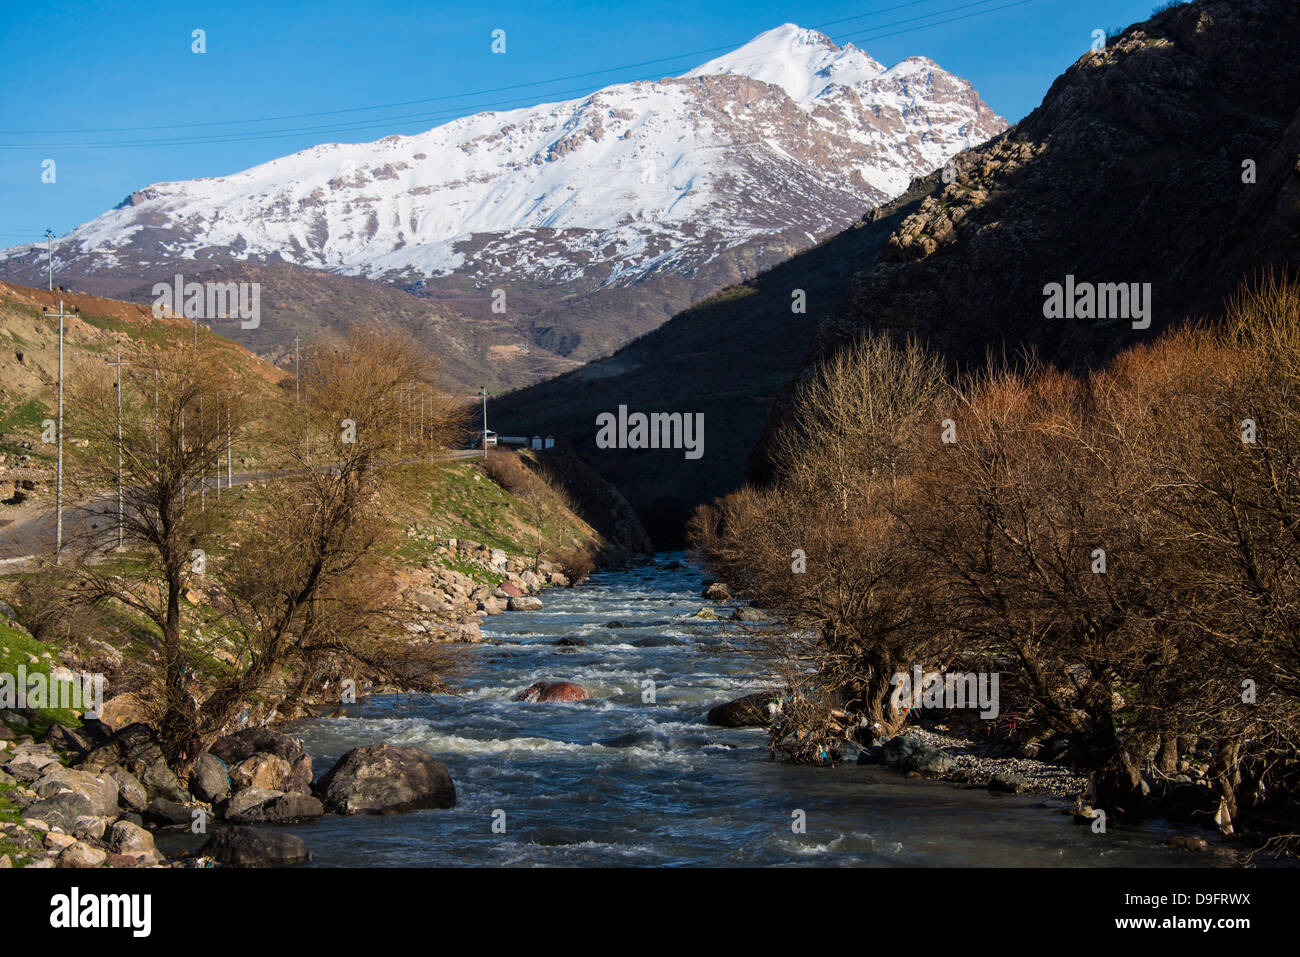 Snow capped mountains above the great Zab River along the Hamilton road leading into Iran, Iraq Kurdistan, Iraq, - Stock Image